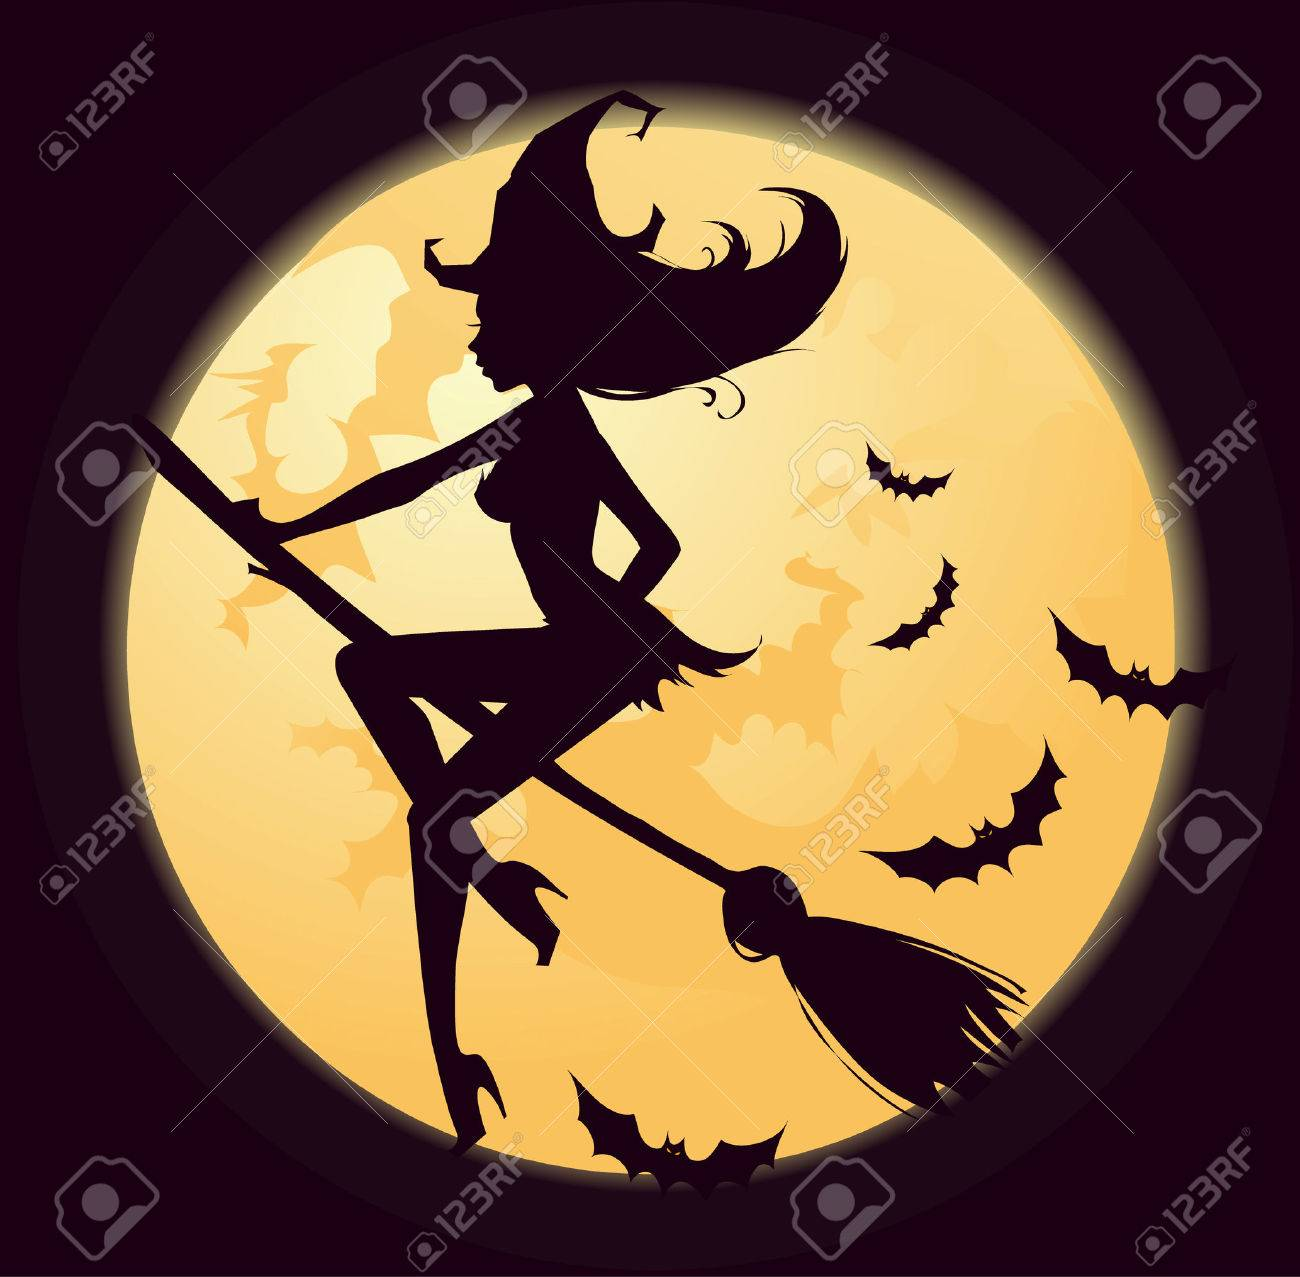 Witch silhouette Stock Vector - 5415533